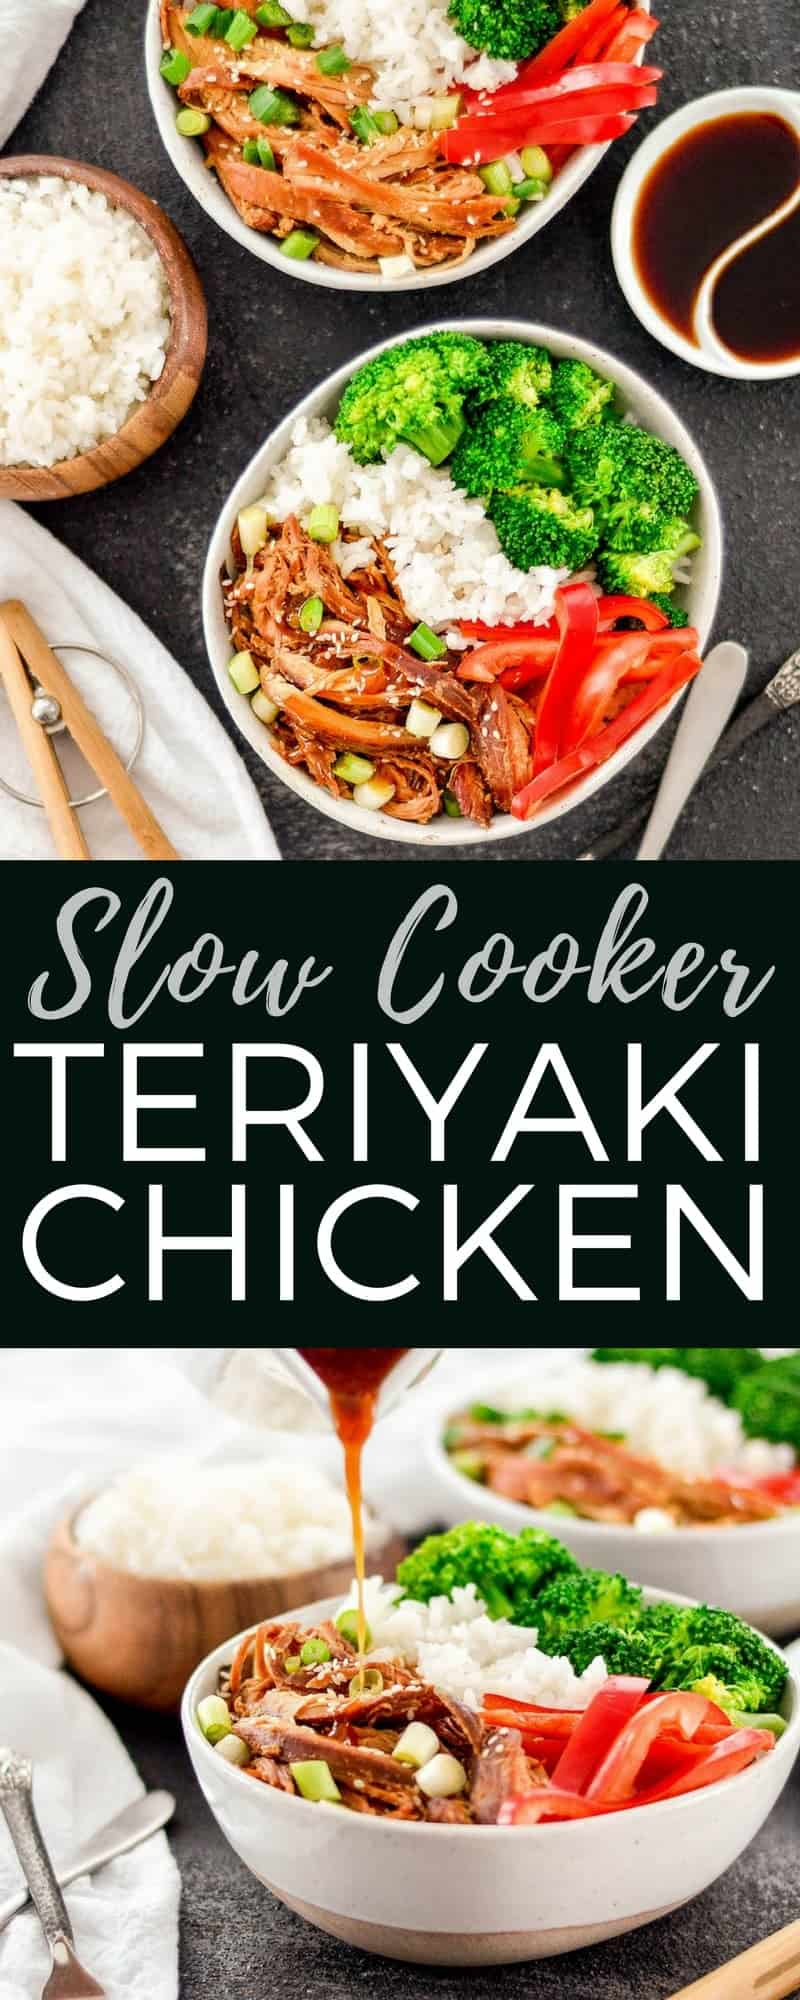 This Slow Cooker Teriyaki Chicken is an easy recipe perfect for busy weeknights! Serve with stir-fried veggies and you have a delicious and healthy dinner! #glutenfree #dairyfree #slowcooker #teriyakichicken #healthyrecipe #easyrecipe #dinner #recipe